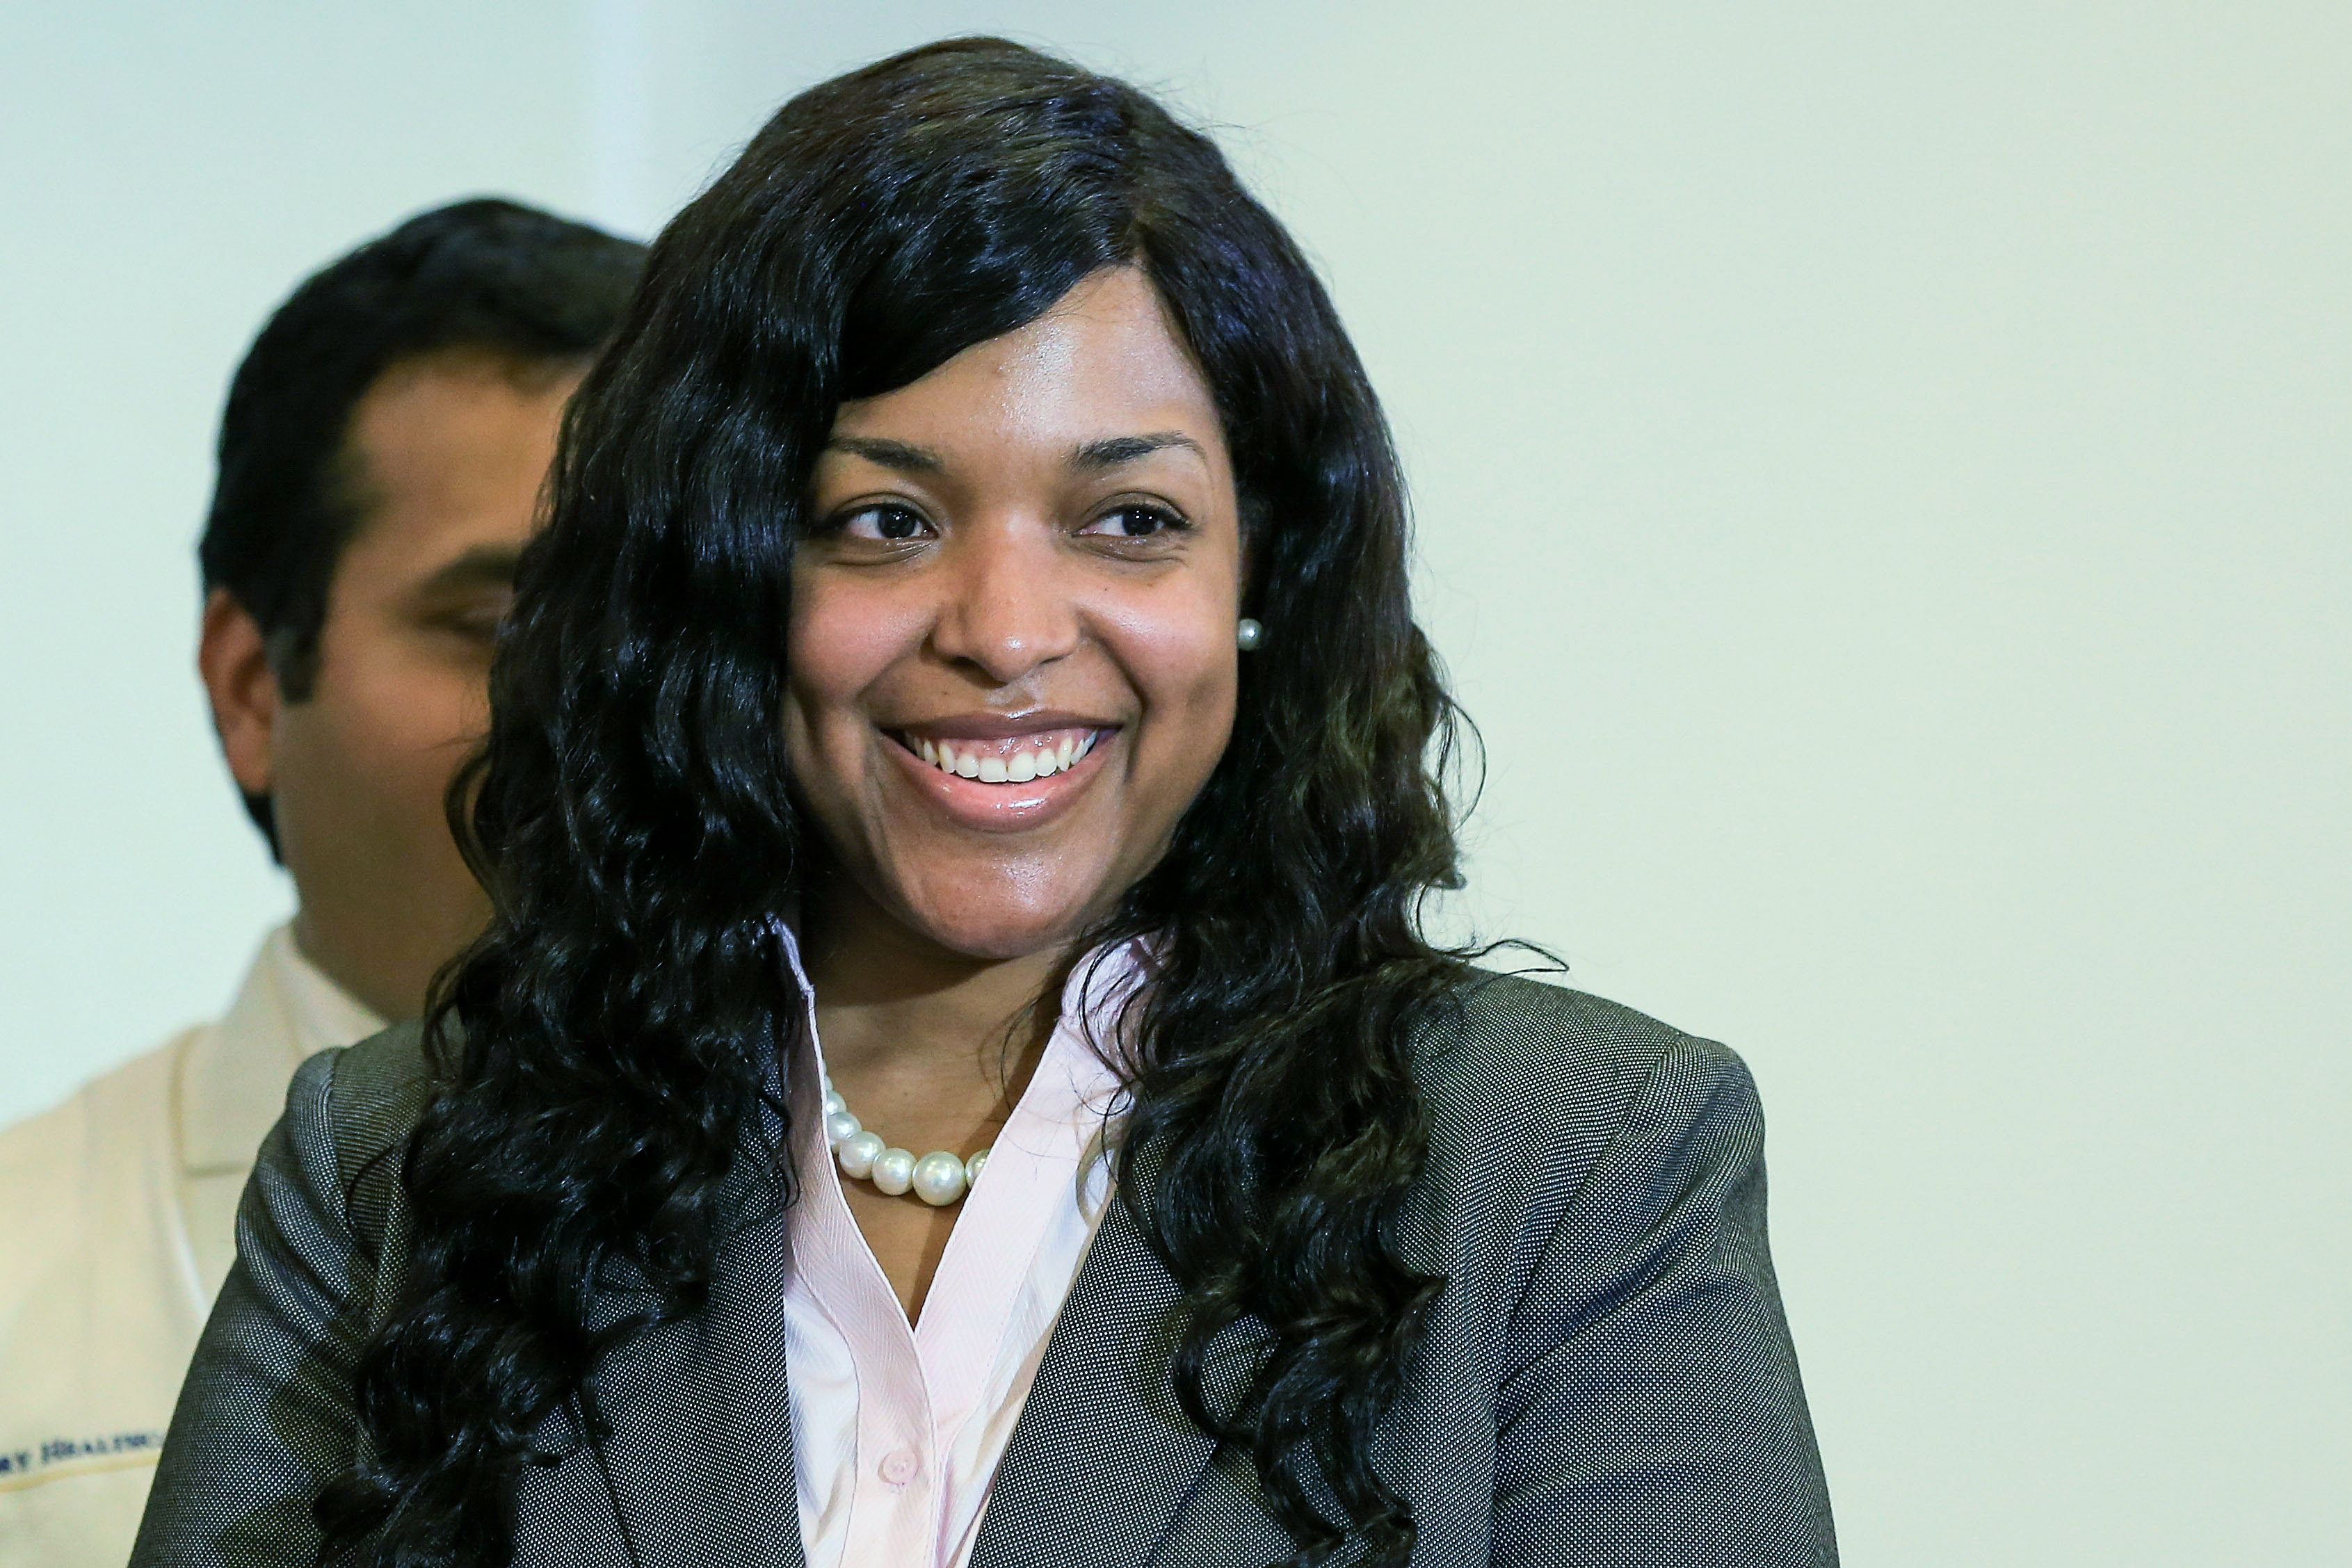 Amber Vinson (2nd R), a Texas nurse who contracted Ebola after treating an infected patient, stands during a press conference after being released from care at Emory University Hospital on August 1, 2014 in Atlanta, Georgia.